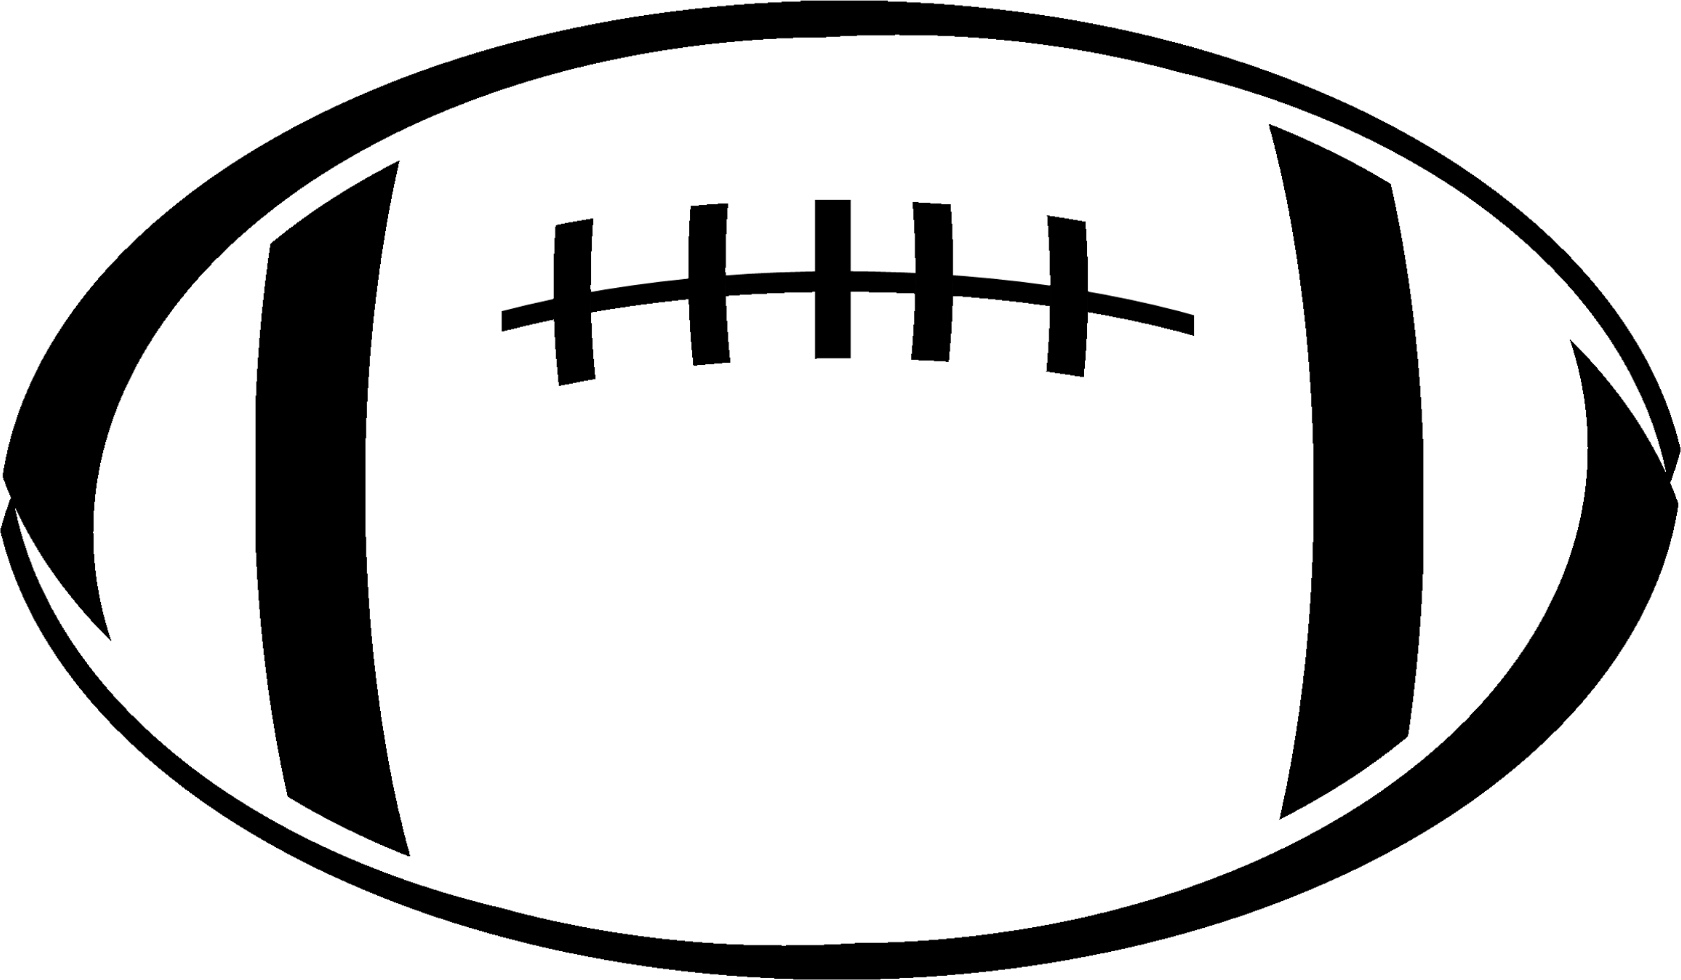 Football photos clipart picture royalty free download Vector football clipart 2 » Clipart Portal picture royalty free download